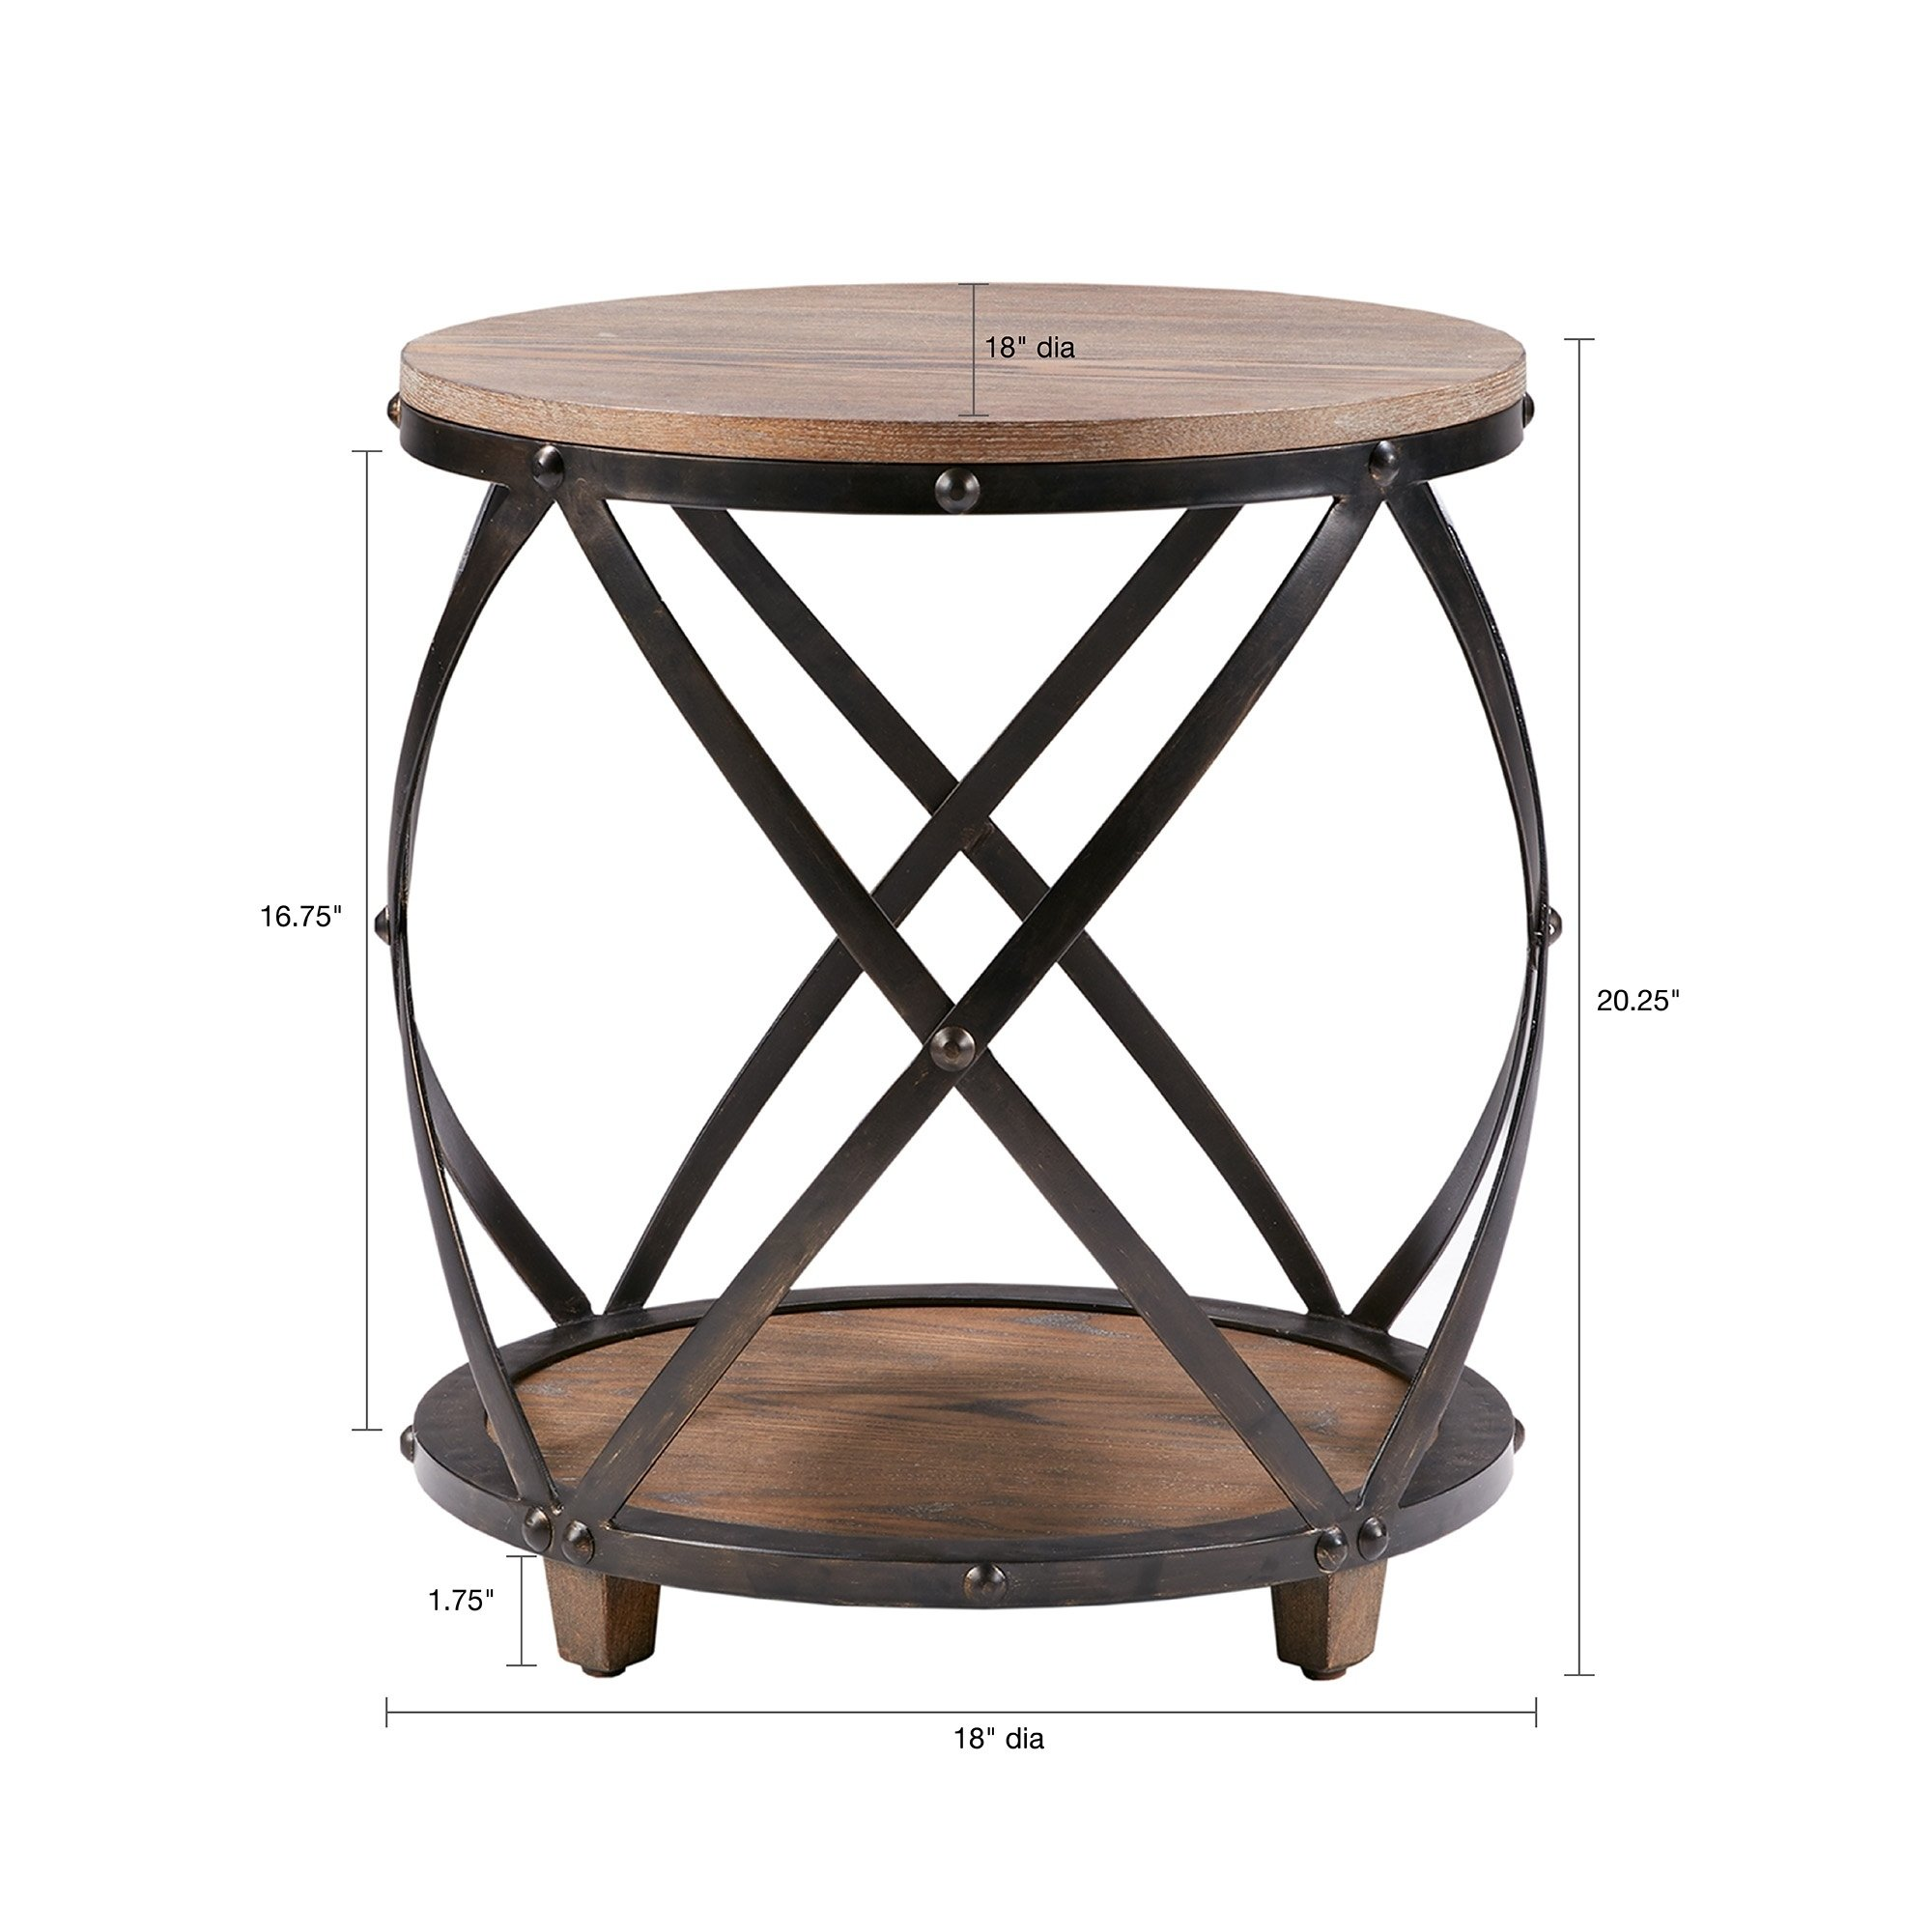 madison park kagen antique bronze bent metal accent table free shipping today acrylic side with shelf storage chest coffee drawers ikea round cover pub garden furniture small